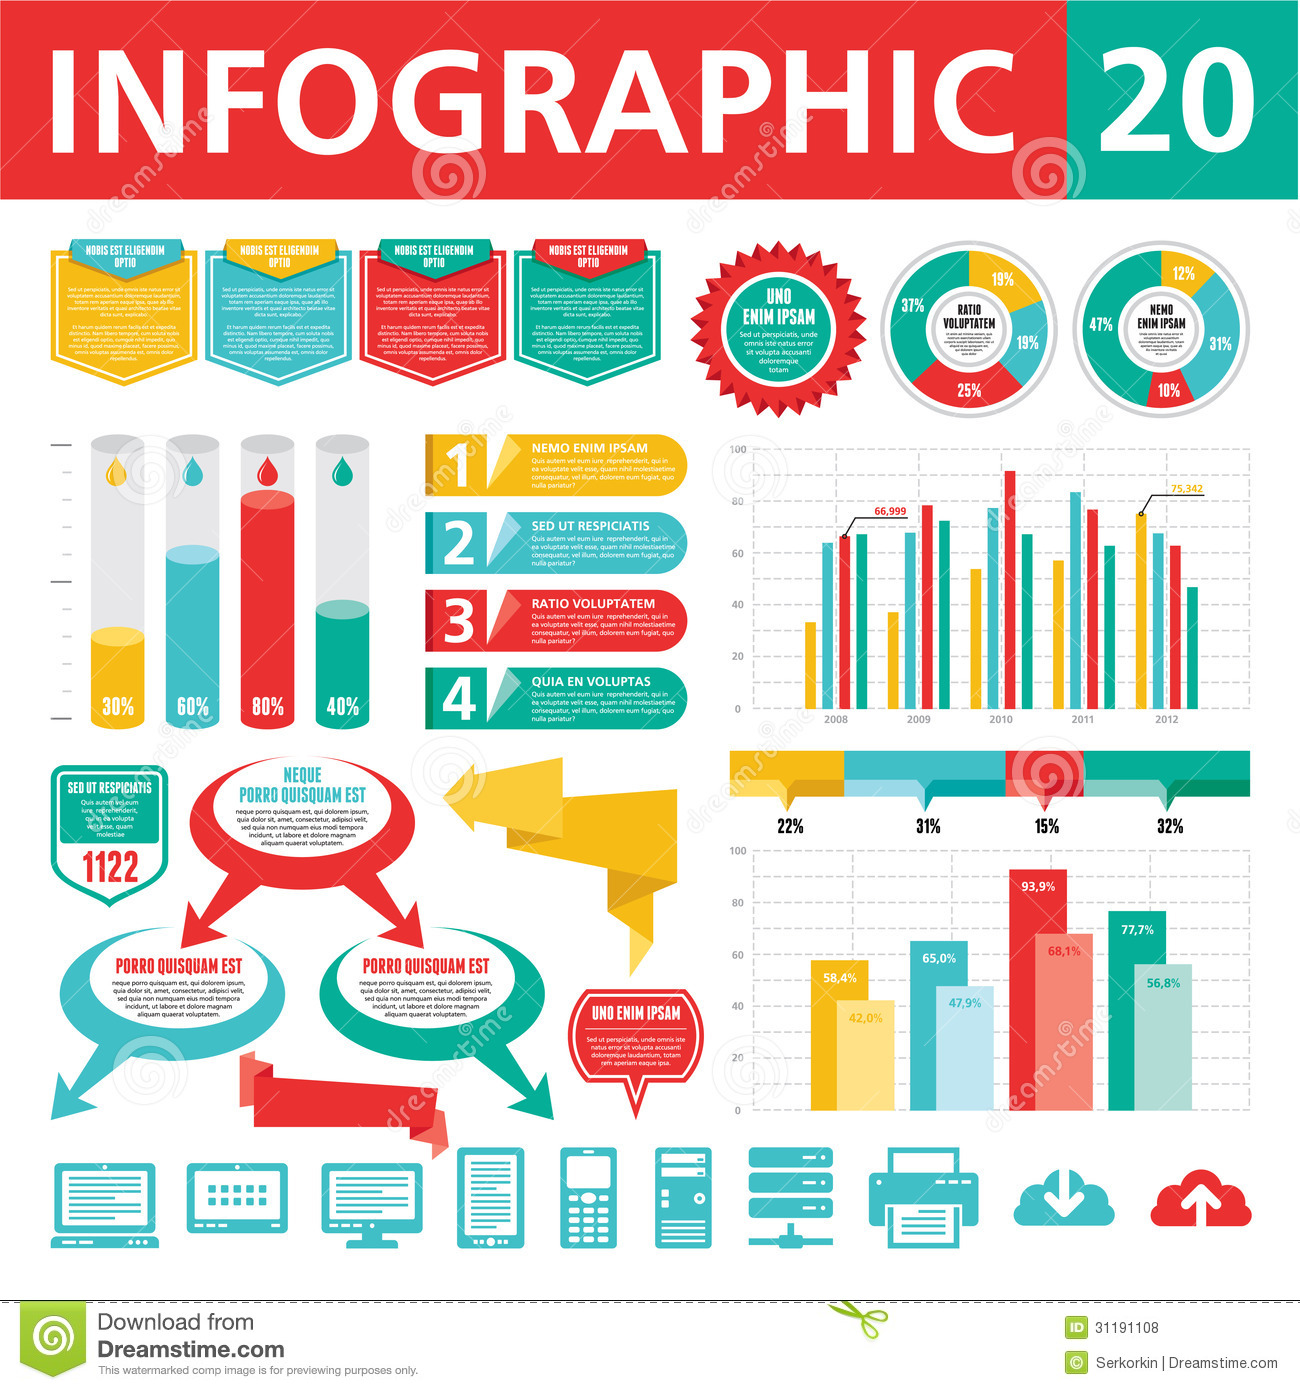 10 Infographic Elements Free Download Images - Free ...